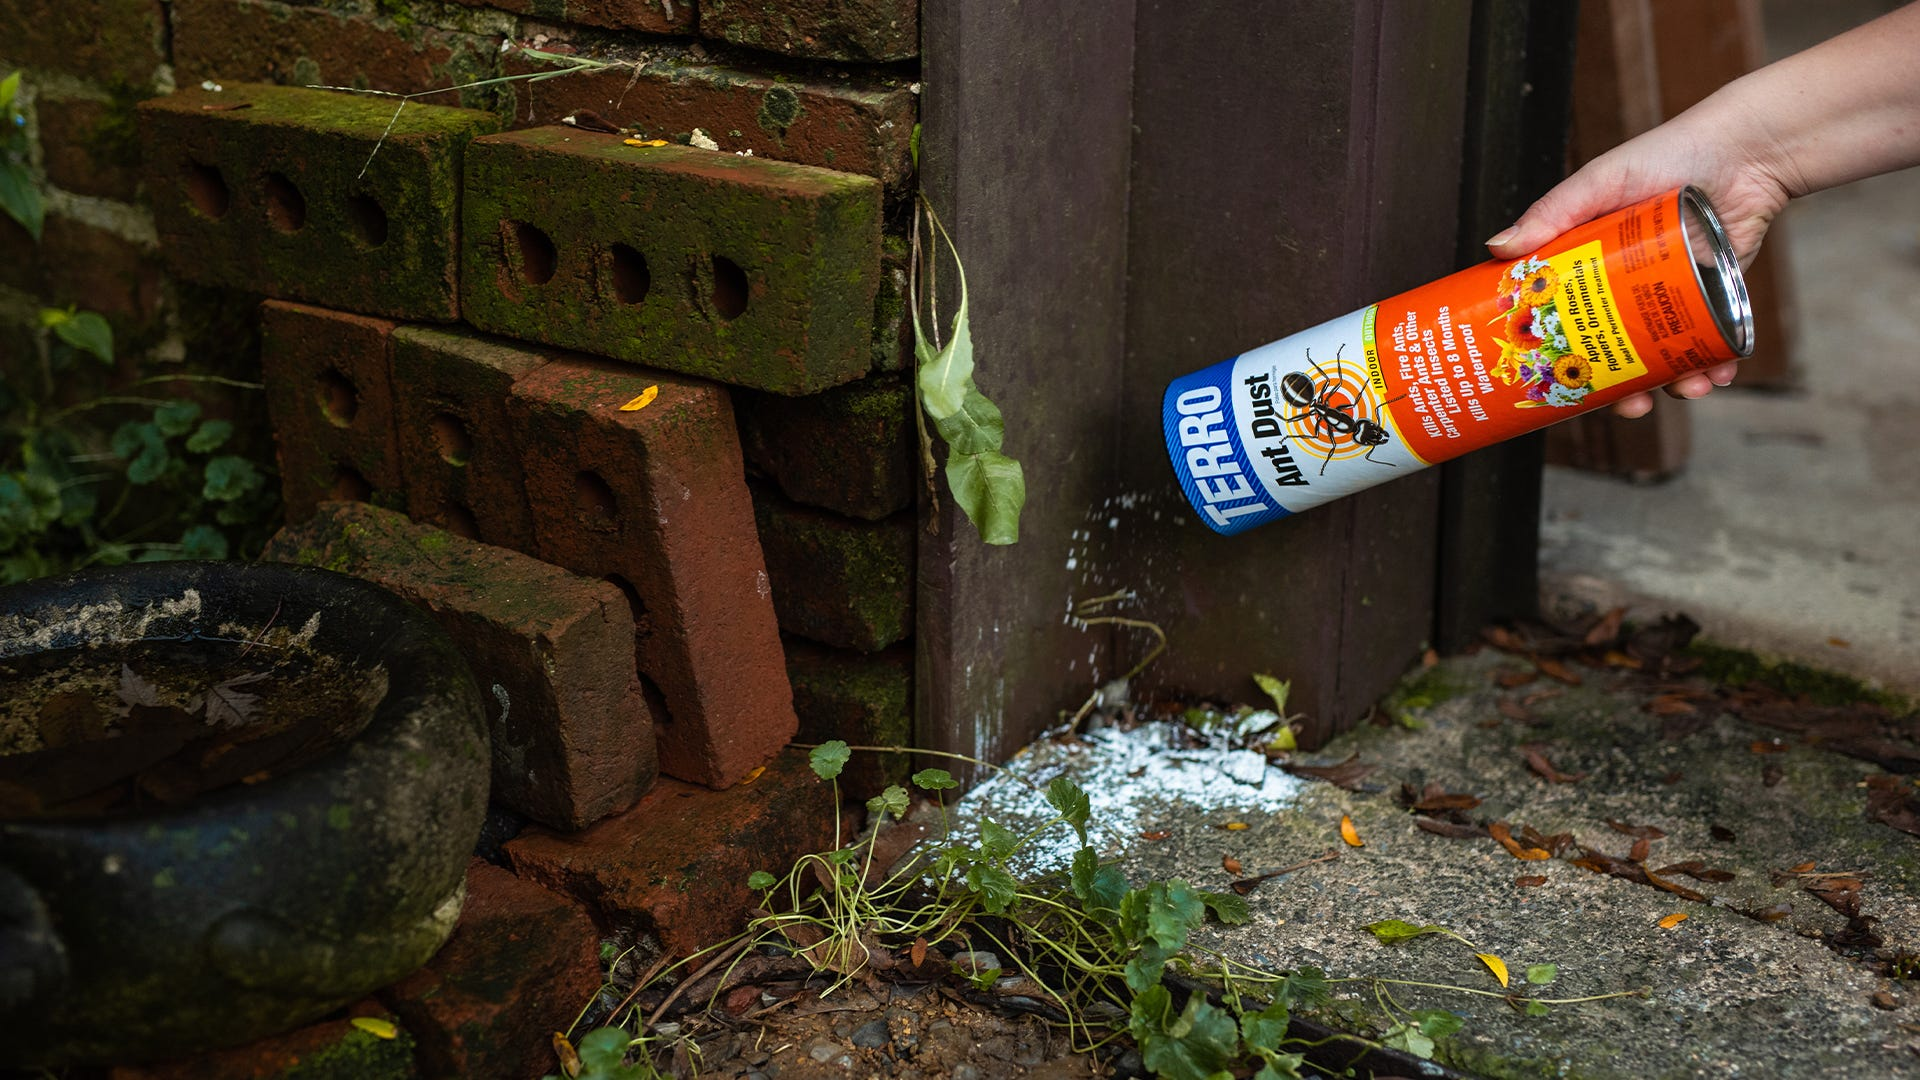 How to Use Contact Killers Safely in Your Home